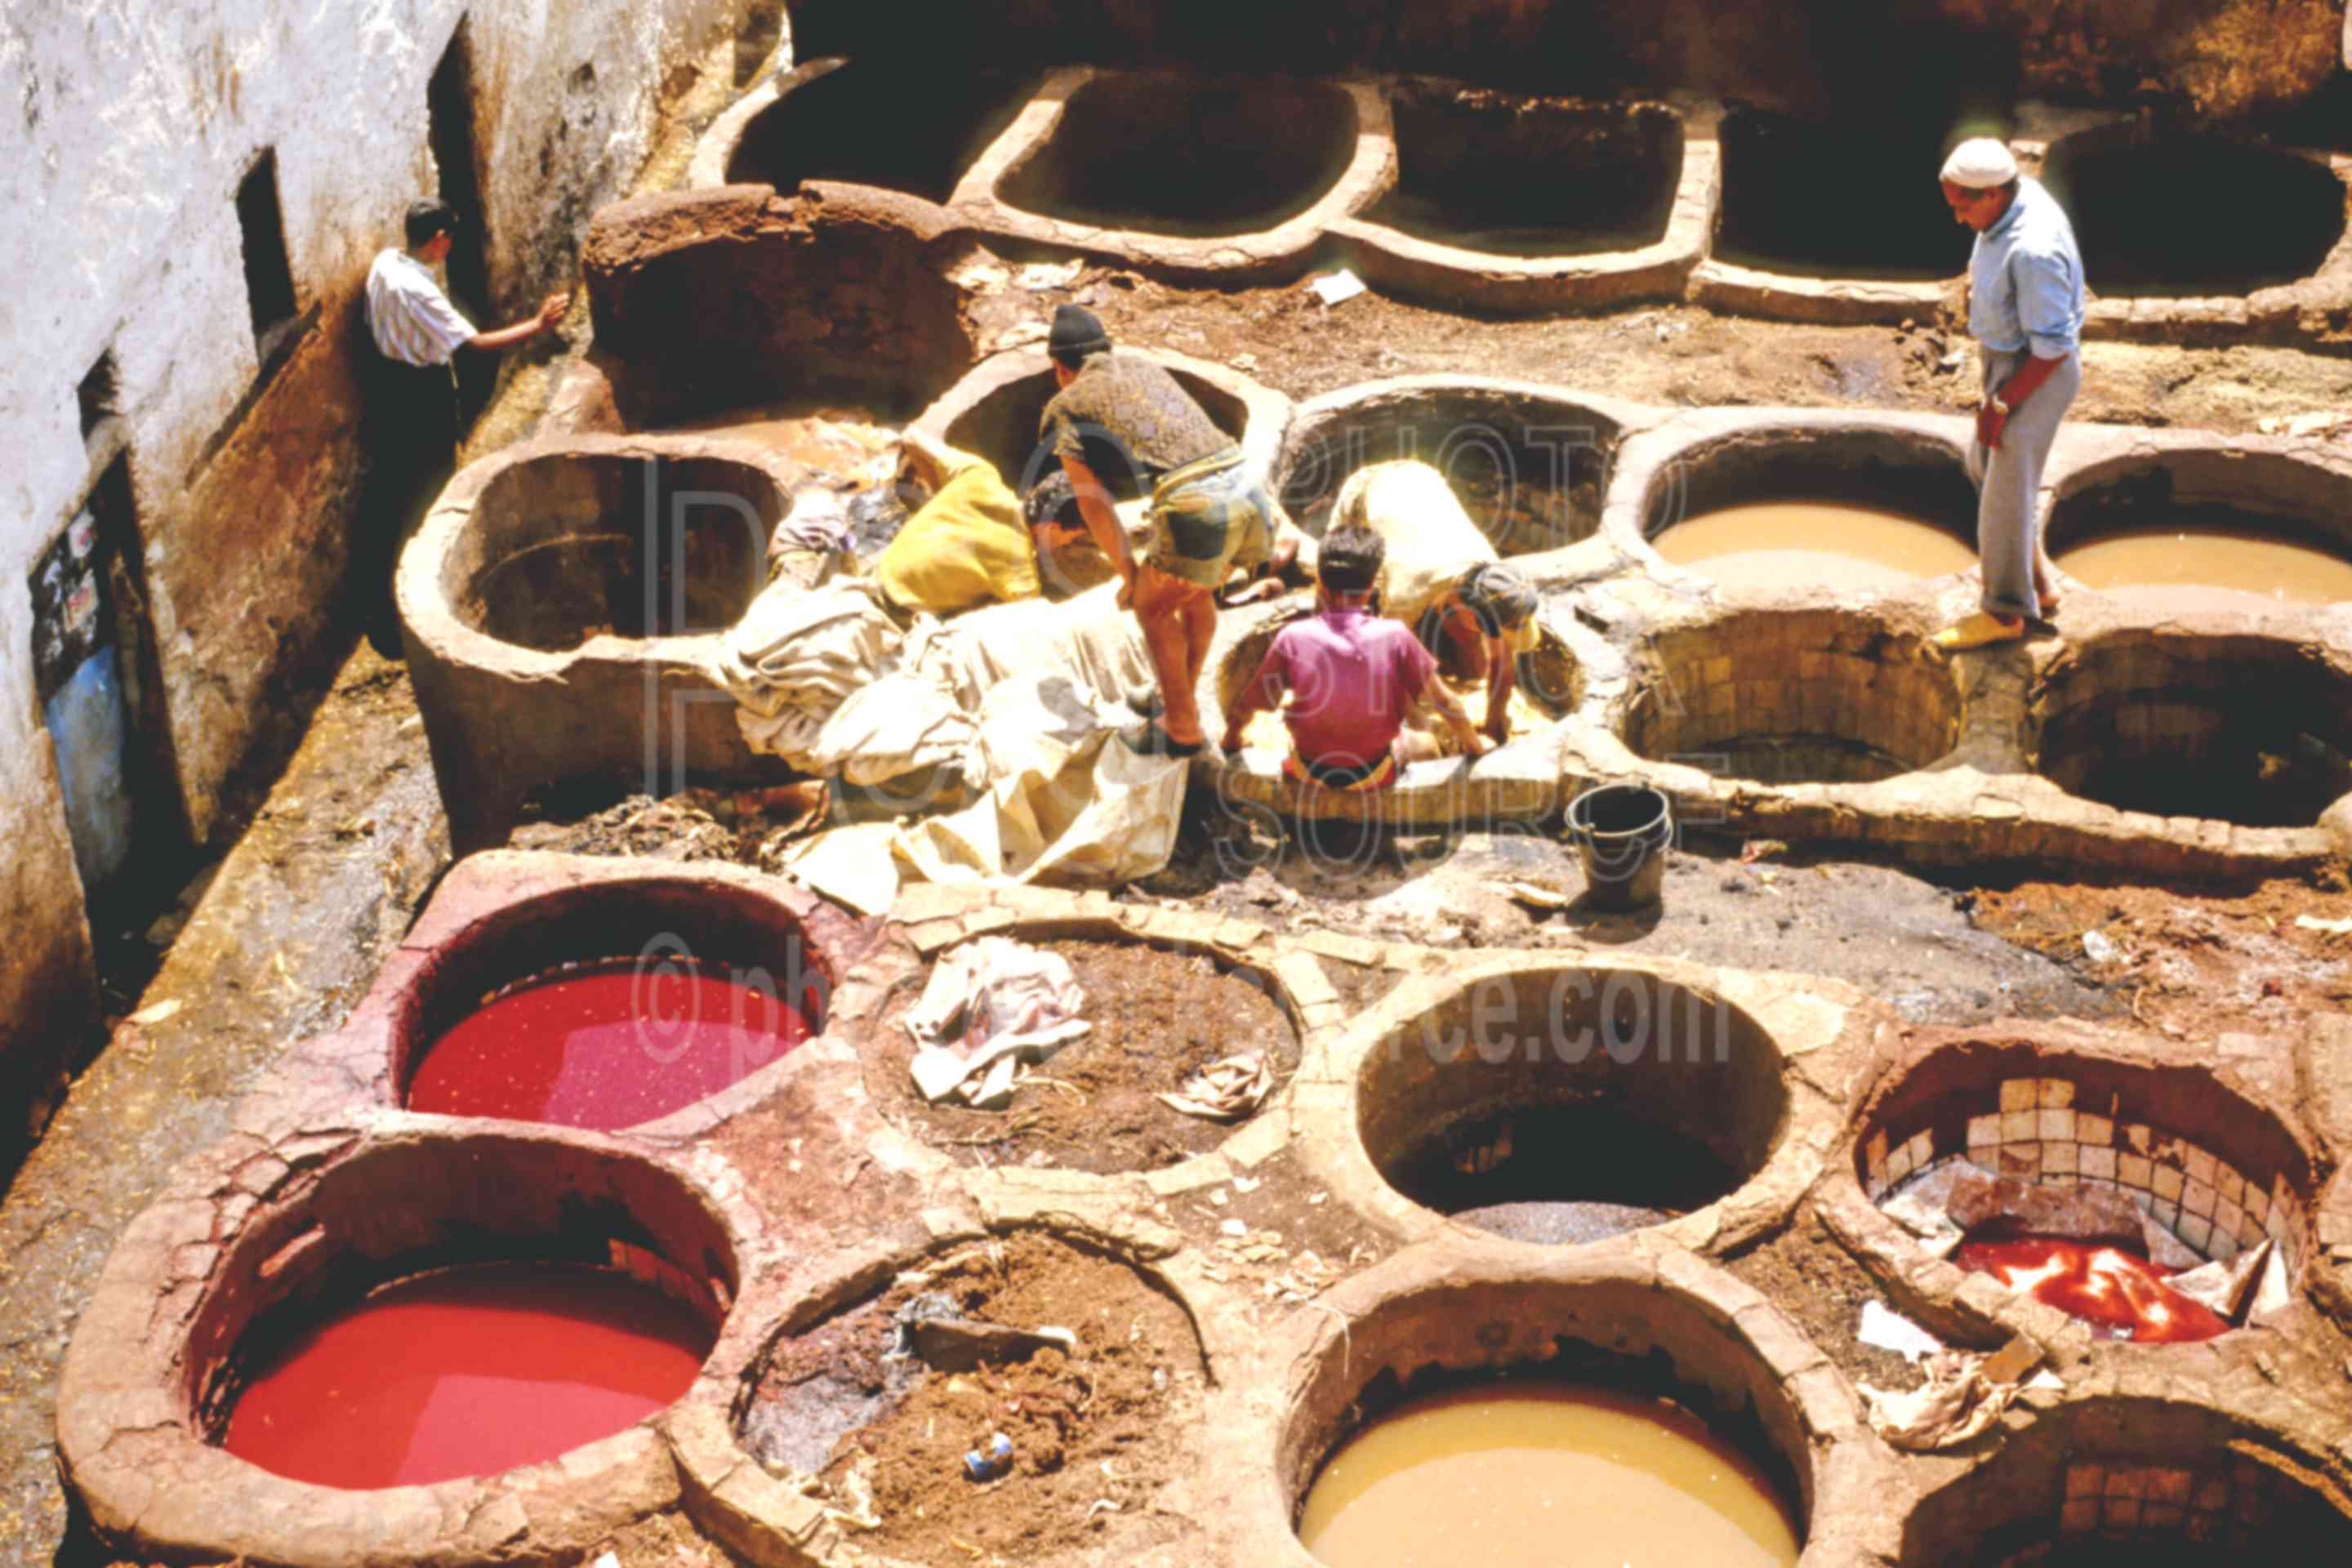 Vats in the Tannery,fezs,mens,skins,tannery,work,worker,fezs